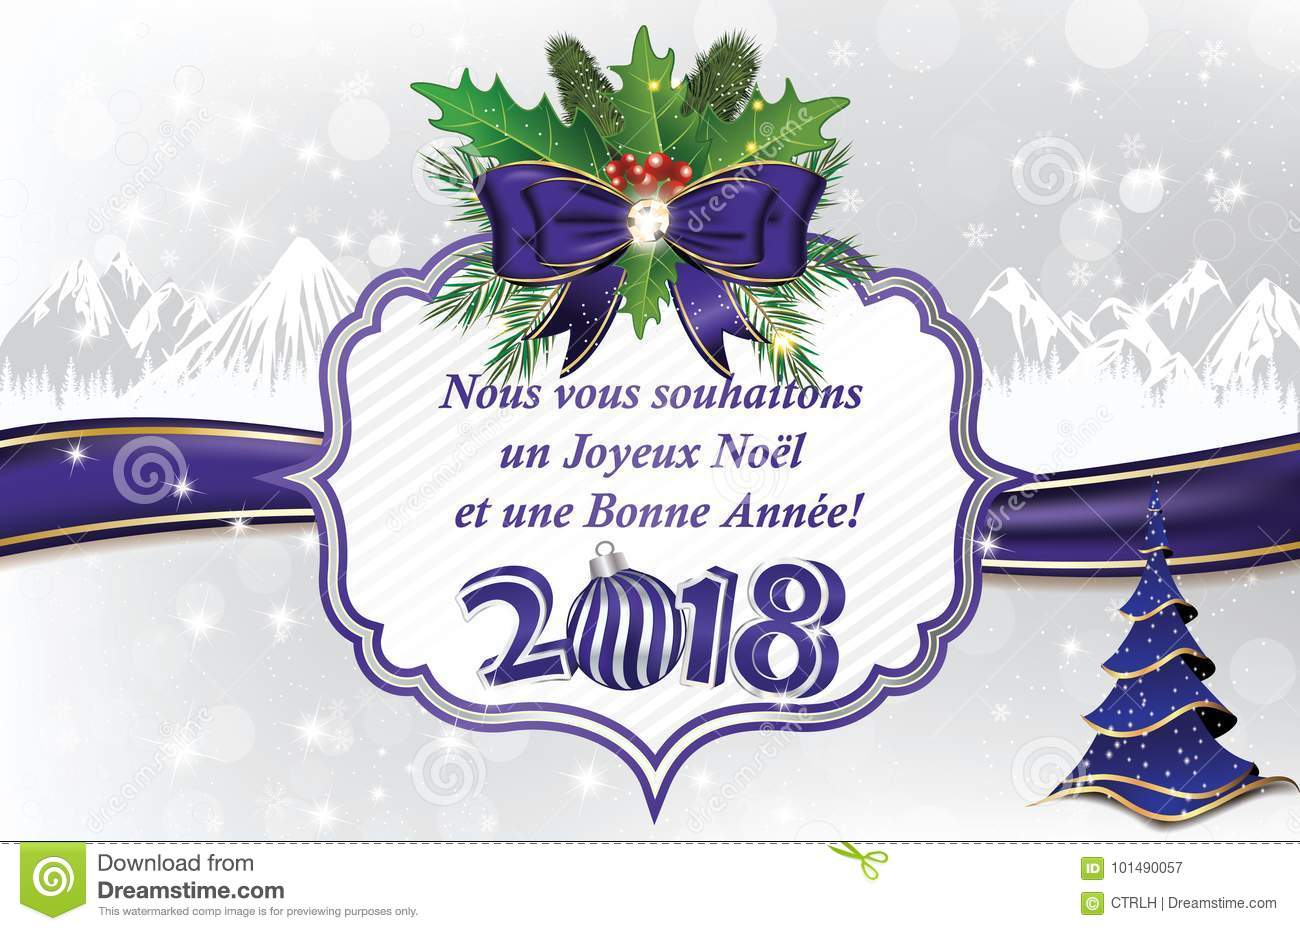 Seasons greetings 2018 in french stock image image of annee download comp m4hsunfo